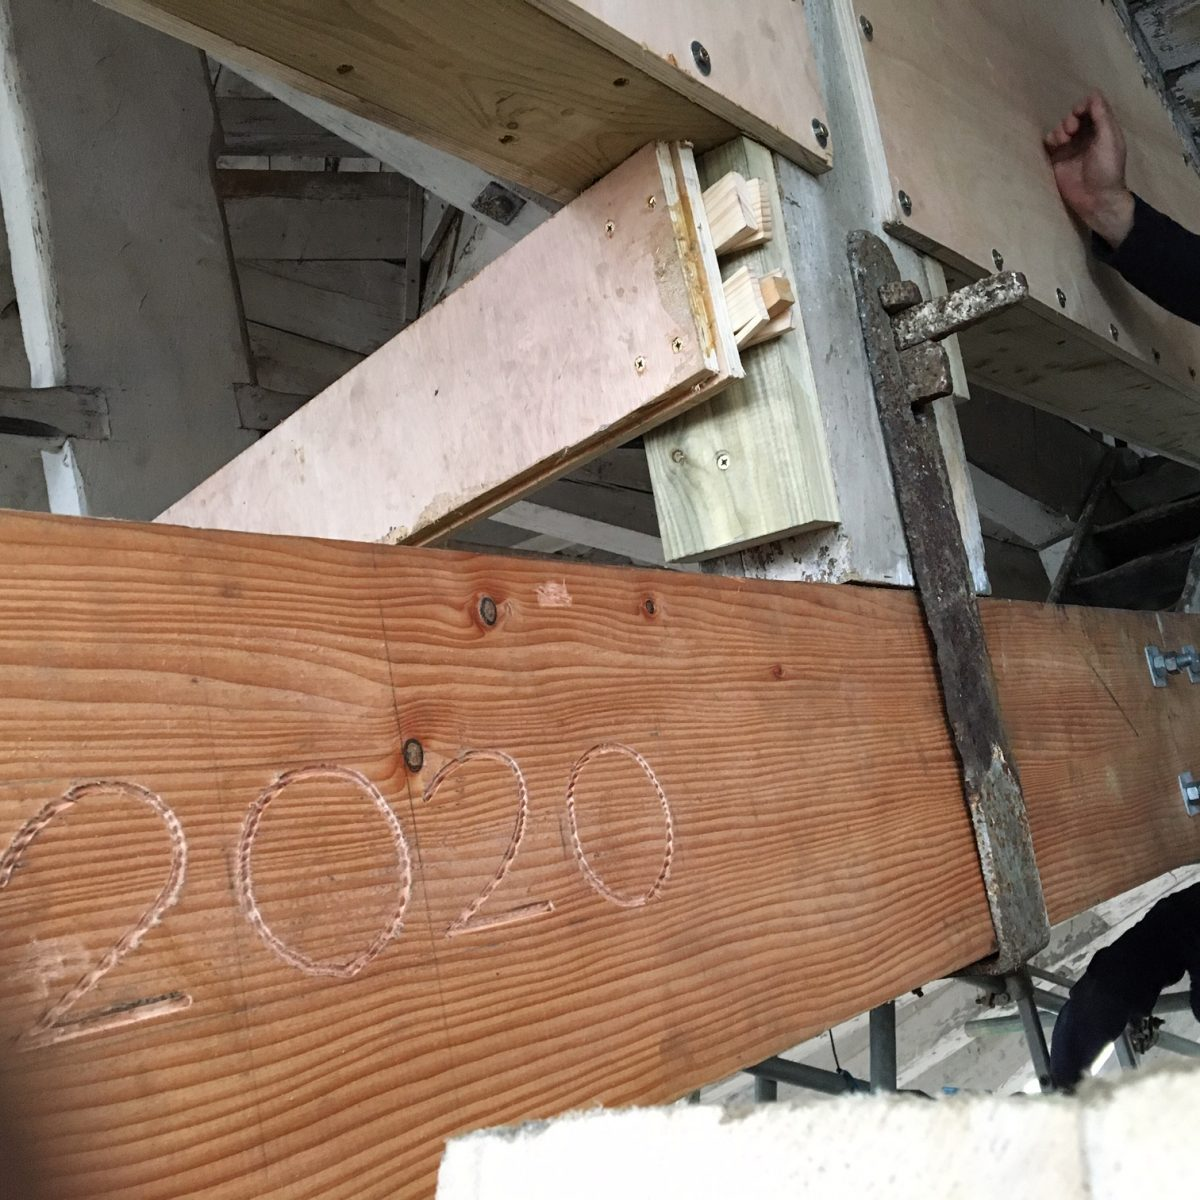 Carving of the data 2020 in new wood as part of 3 Slip repair at The Historic Dockyard Chatham